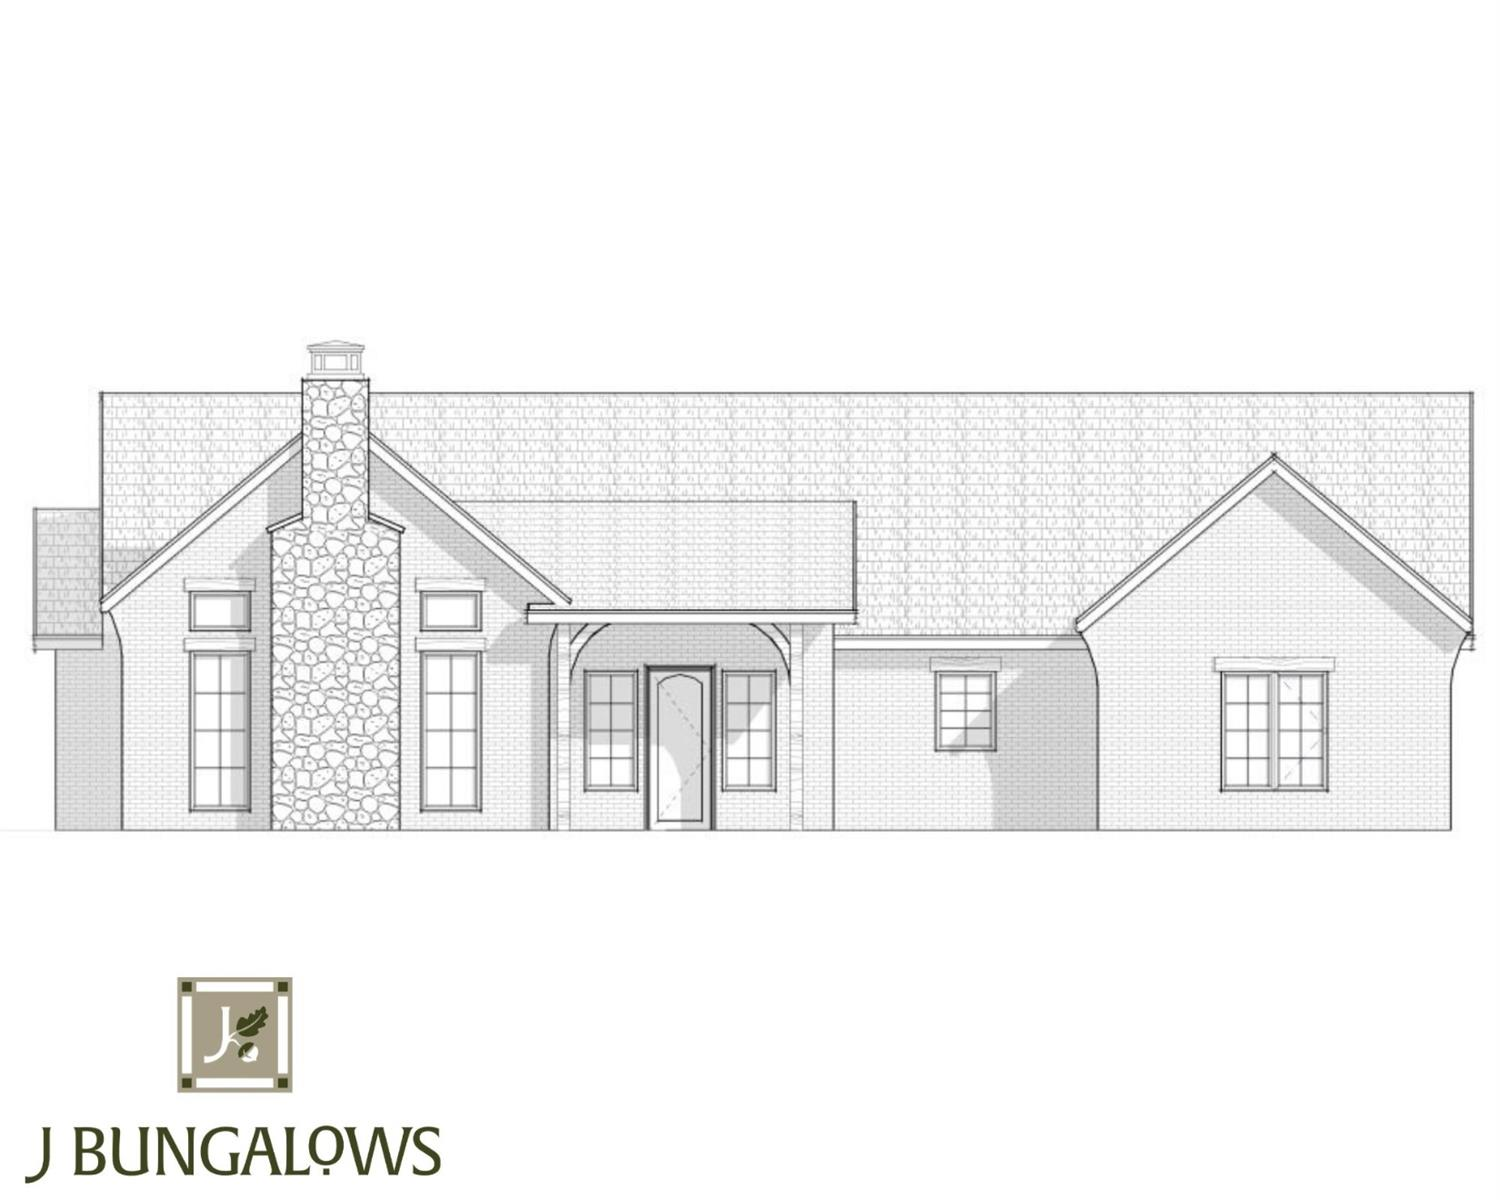 New construction from J Bungalows in Fountain Hills. 4 bedroom, 3 bathroom, 2 car garage. Estimated completion date of August 1, 2020.